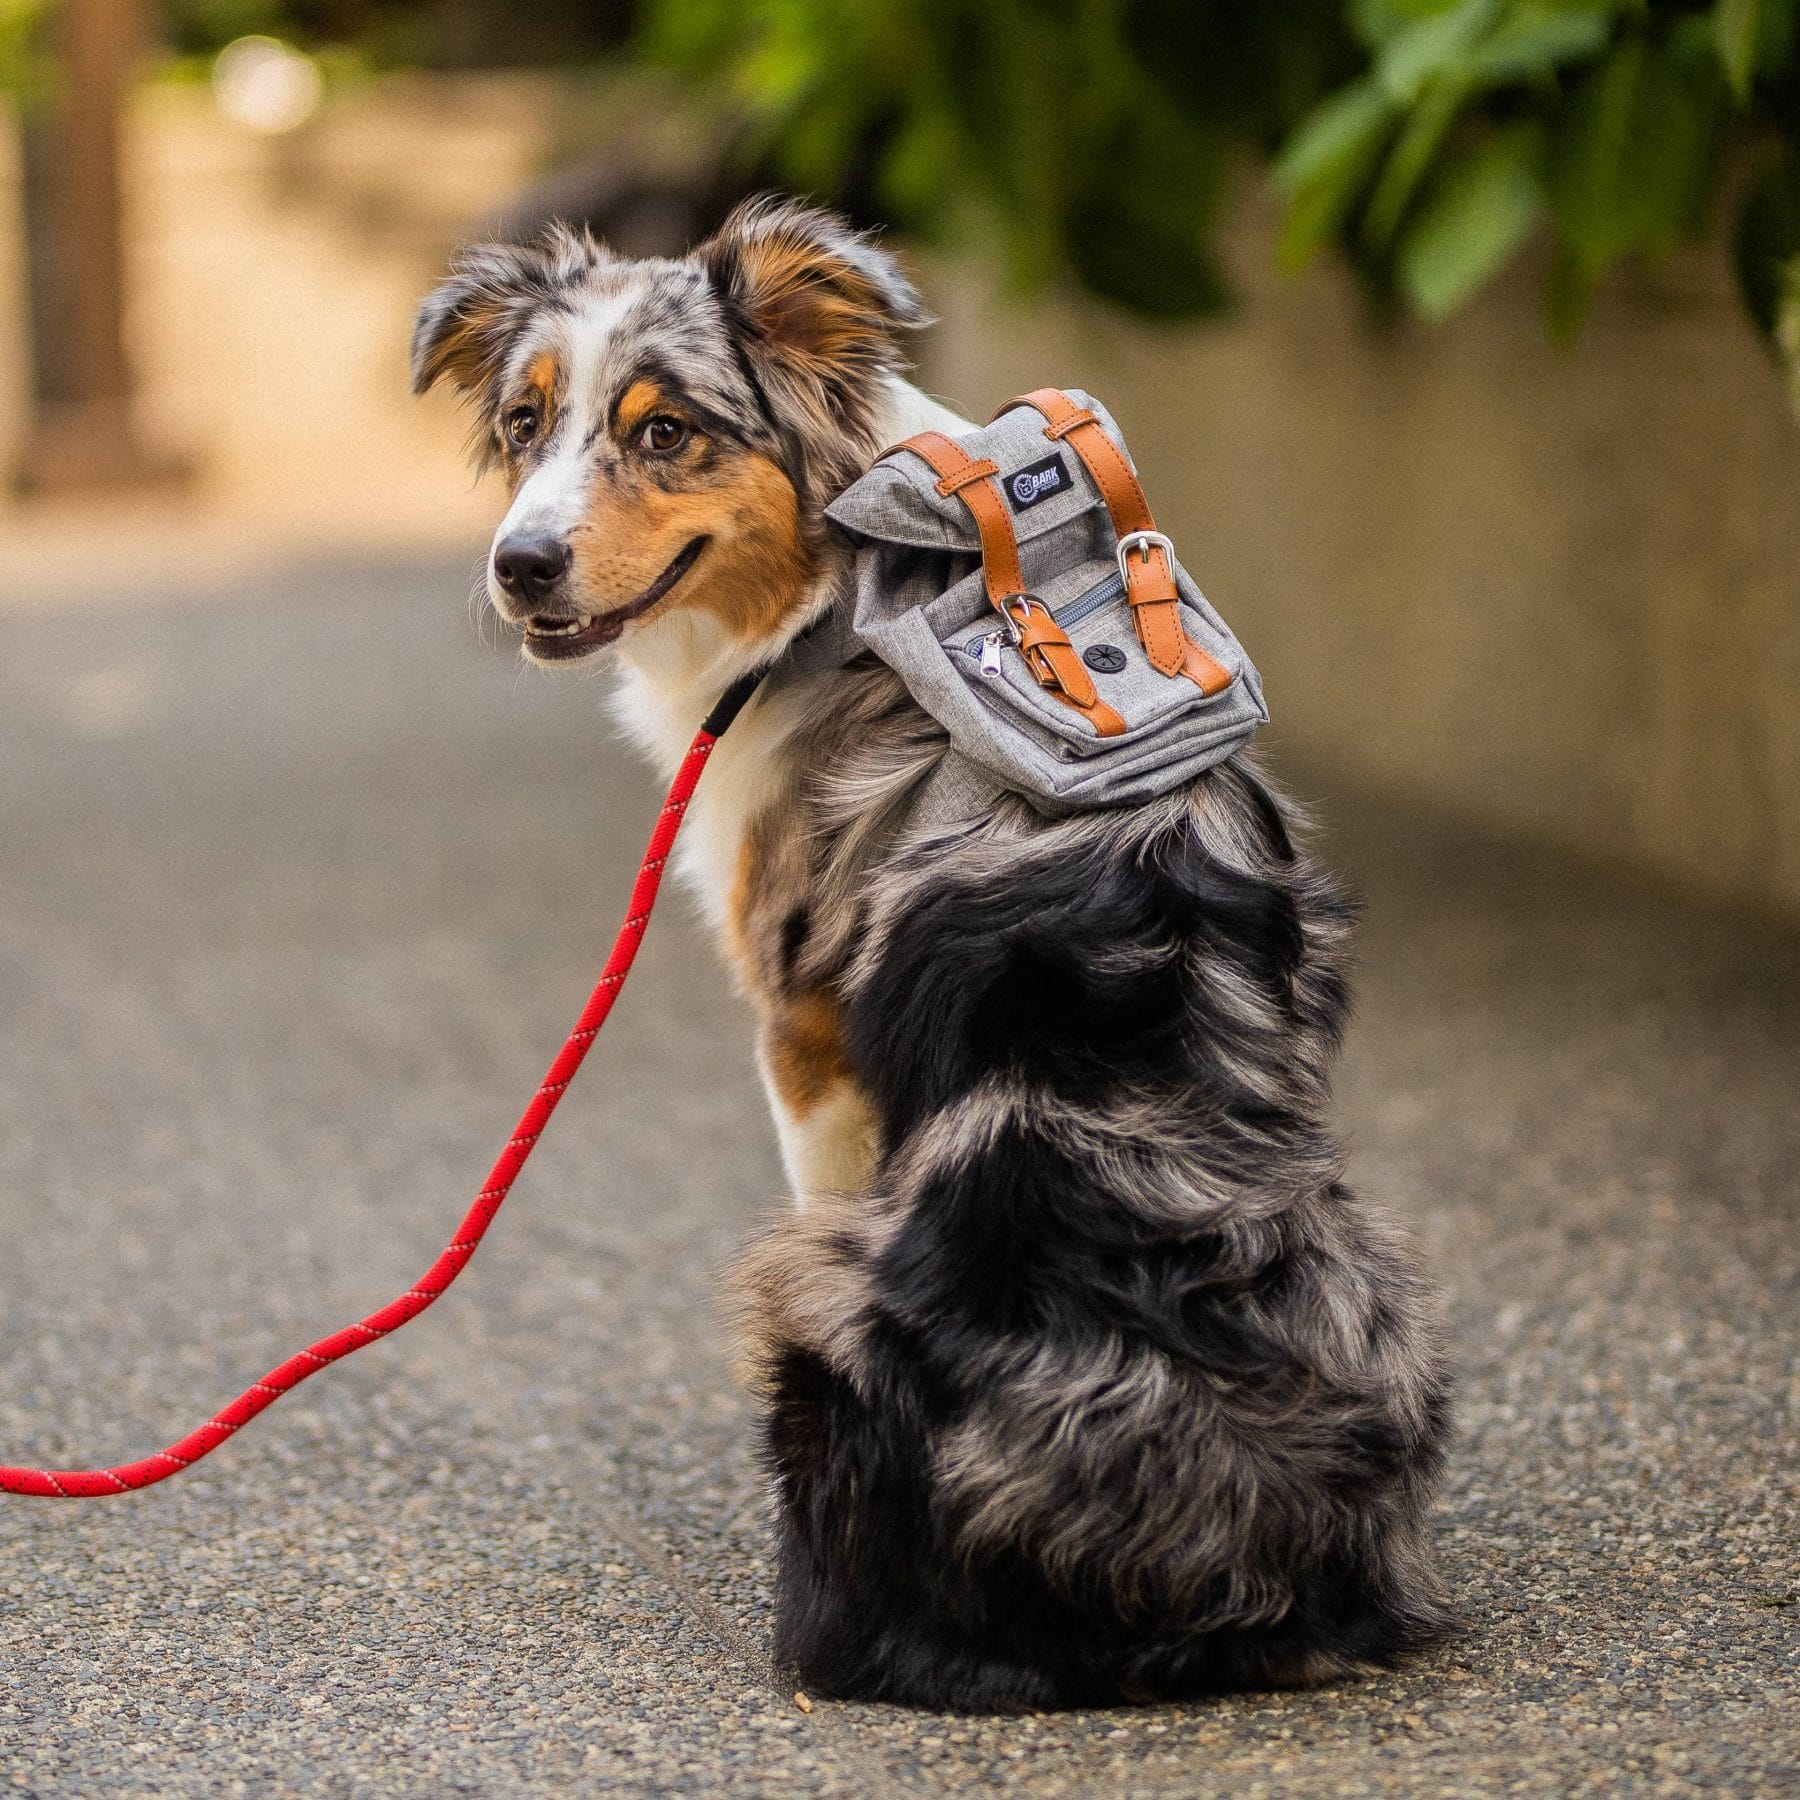 A cattle dog sits wearing a dog backpack